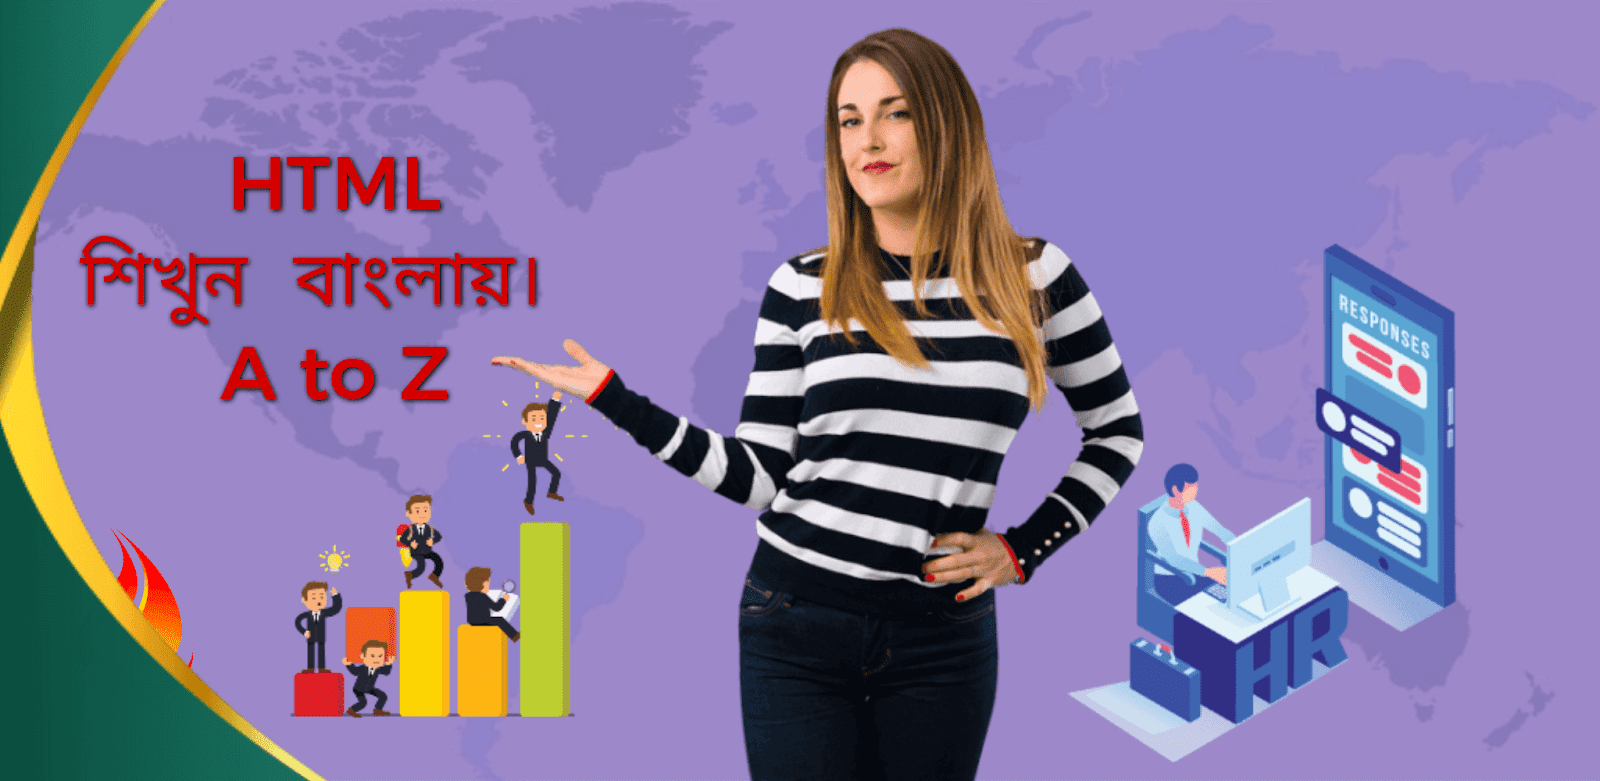 How to learn html in bangla